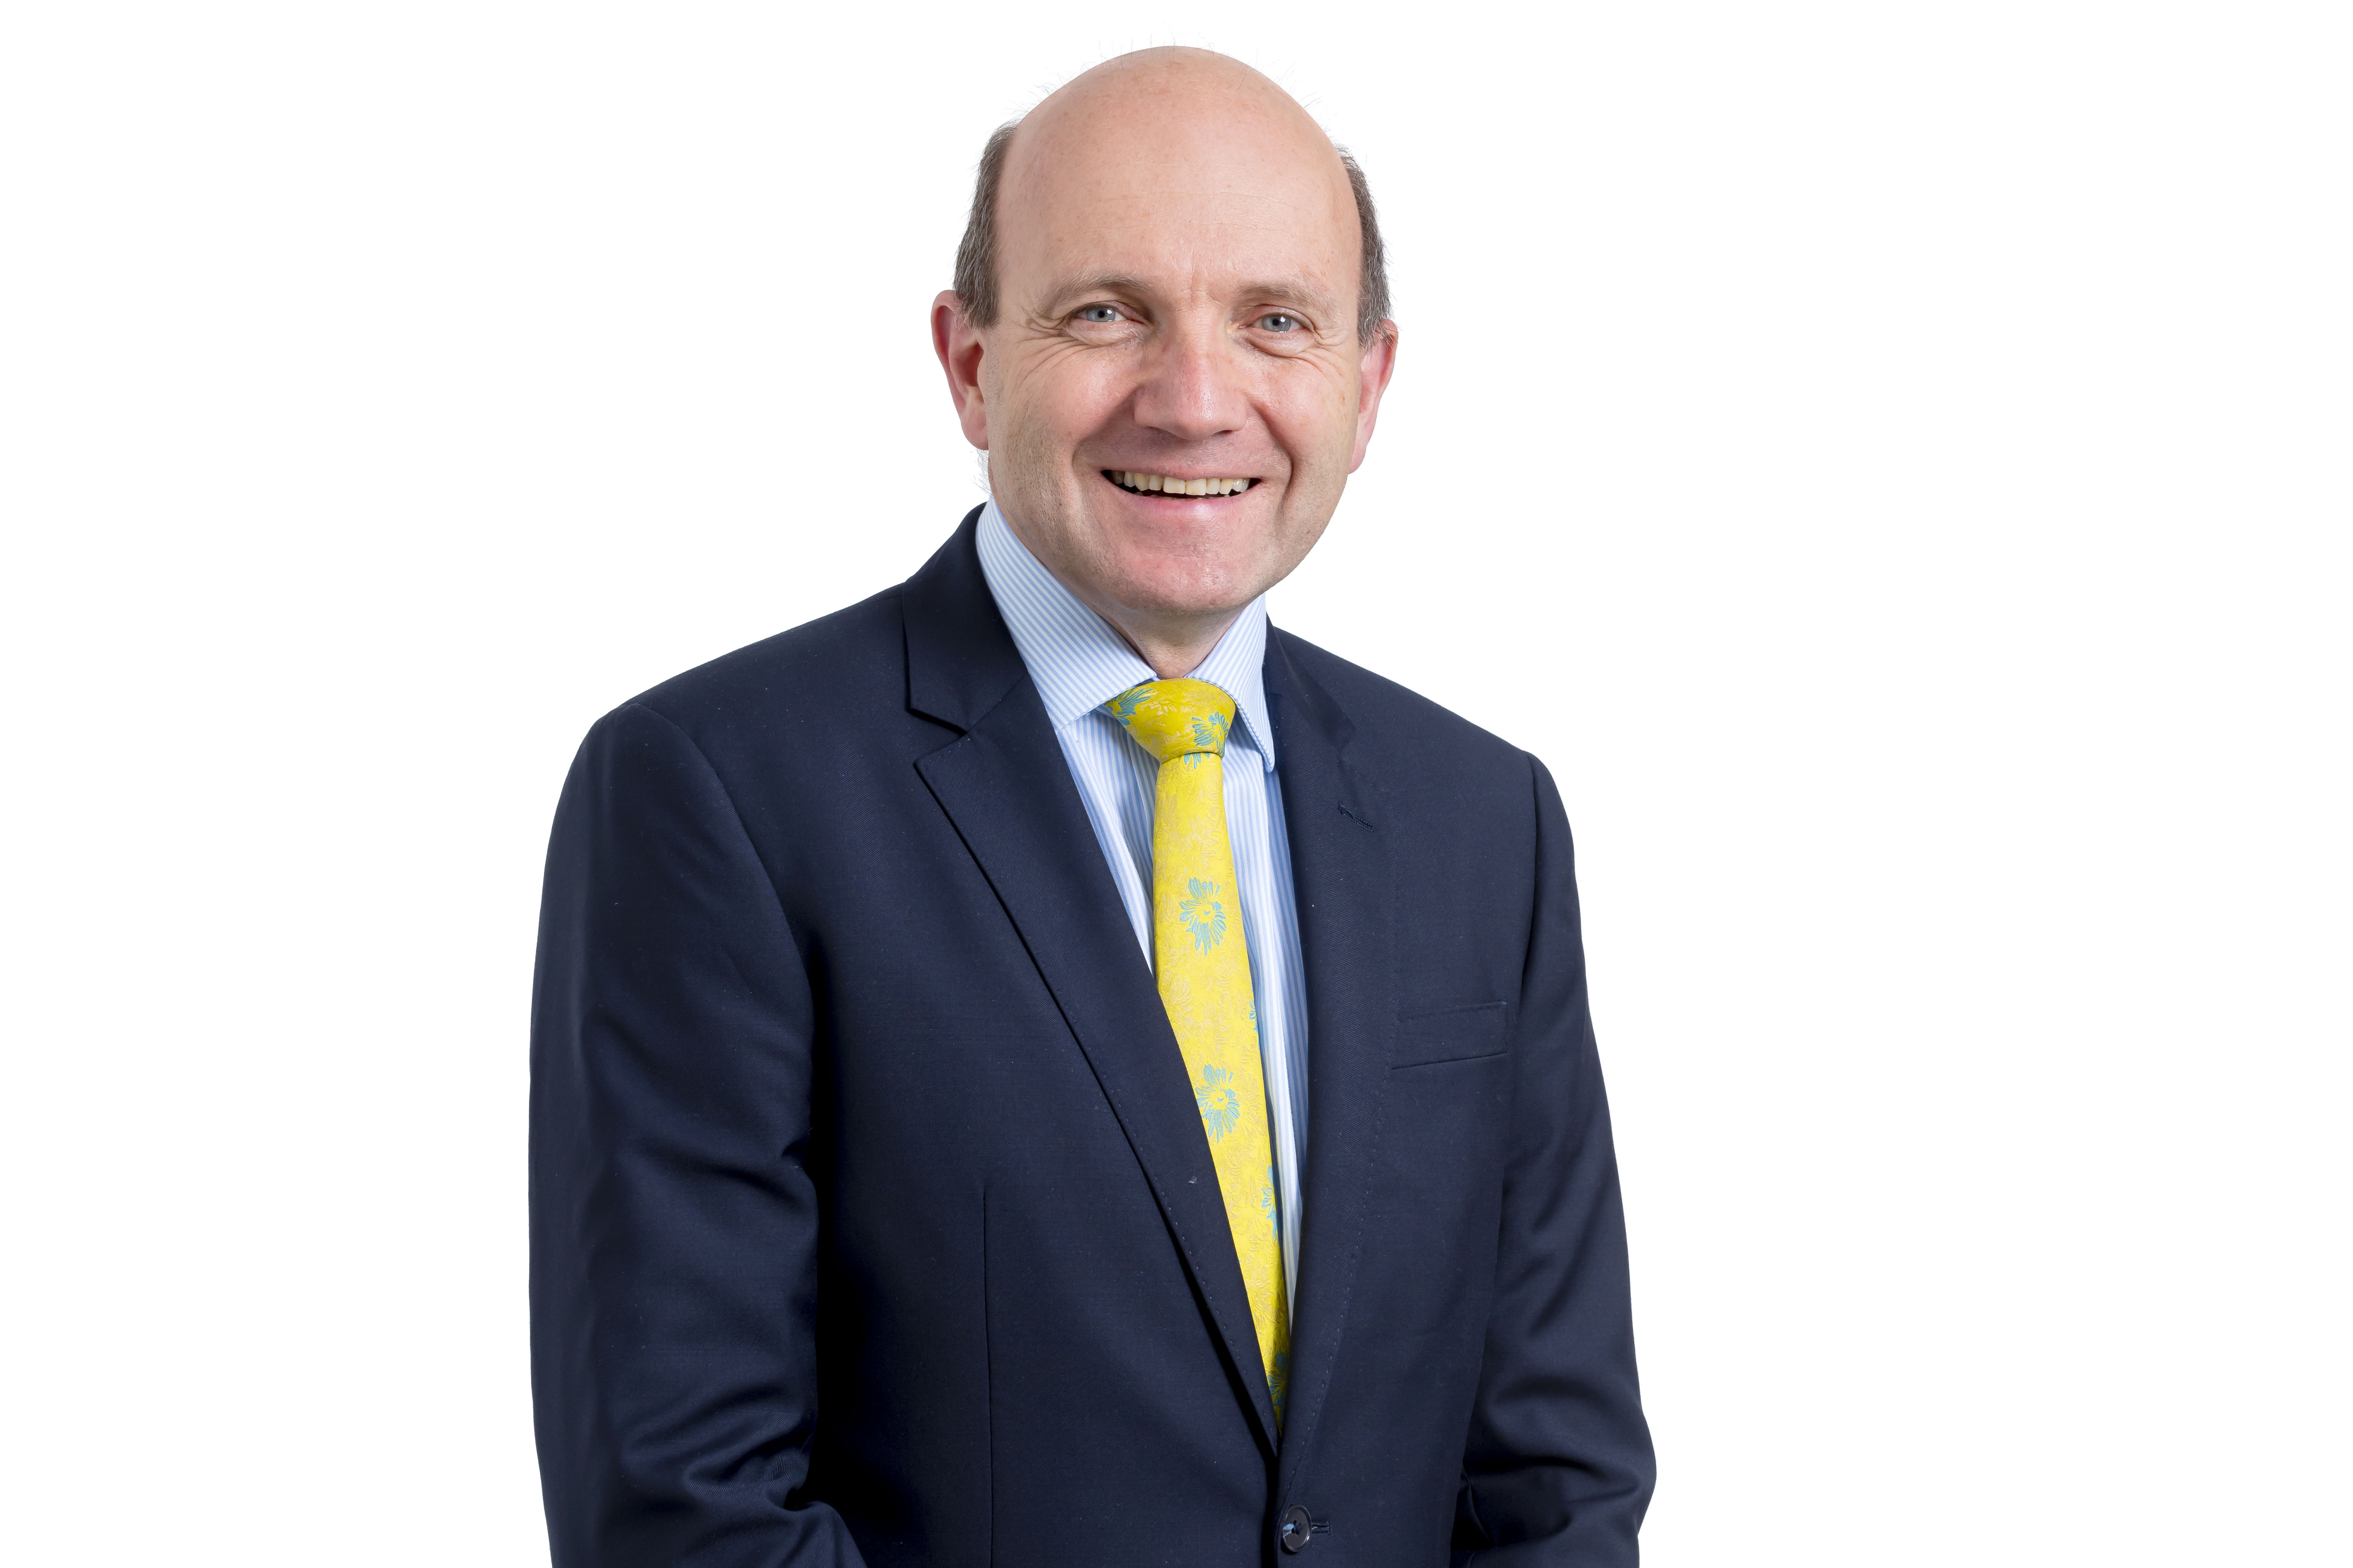 Nick Barwood wearing a navy blue blazer, blue and white striped shirt and yellow floral tie smiles towards camera